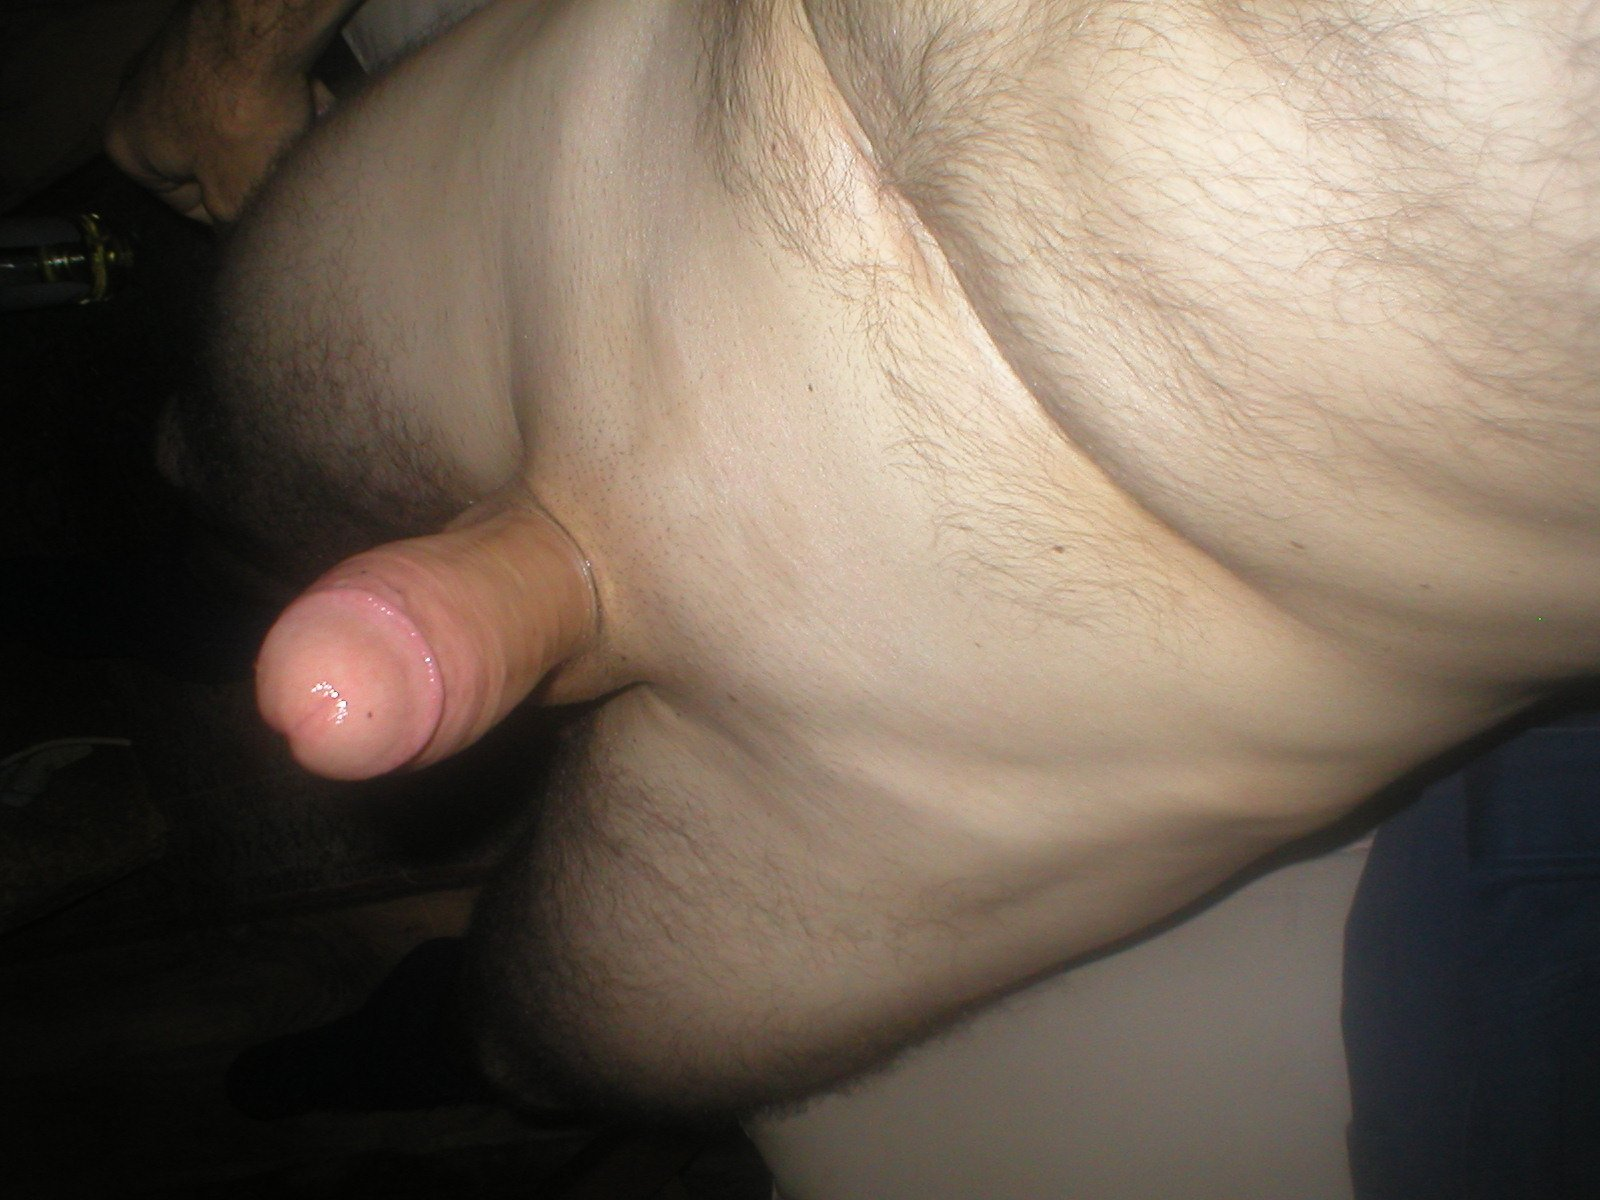 Friskywriter from New South Wales,Australia